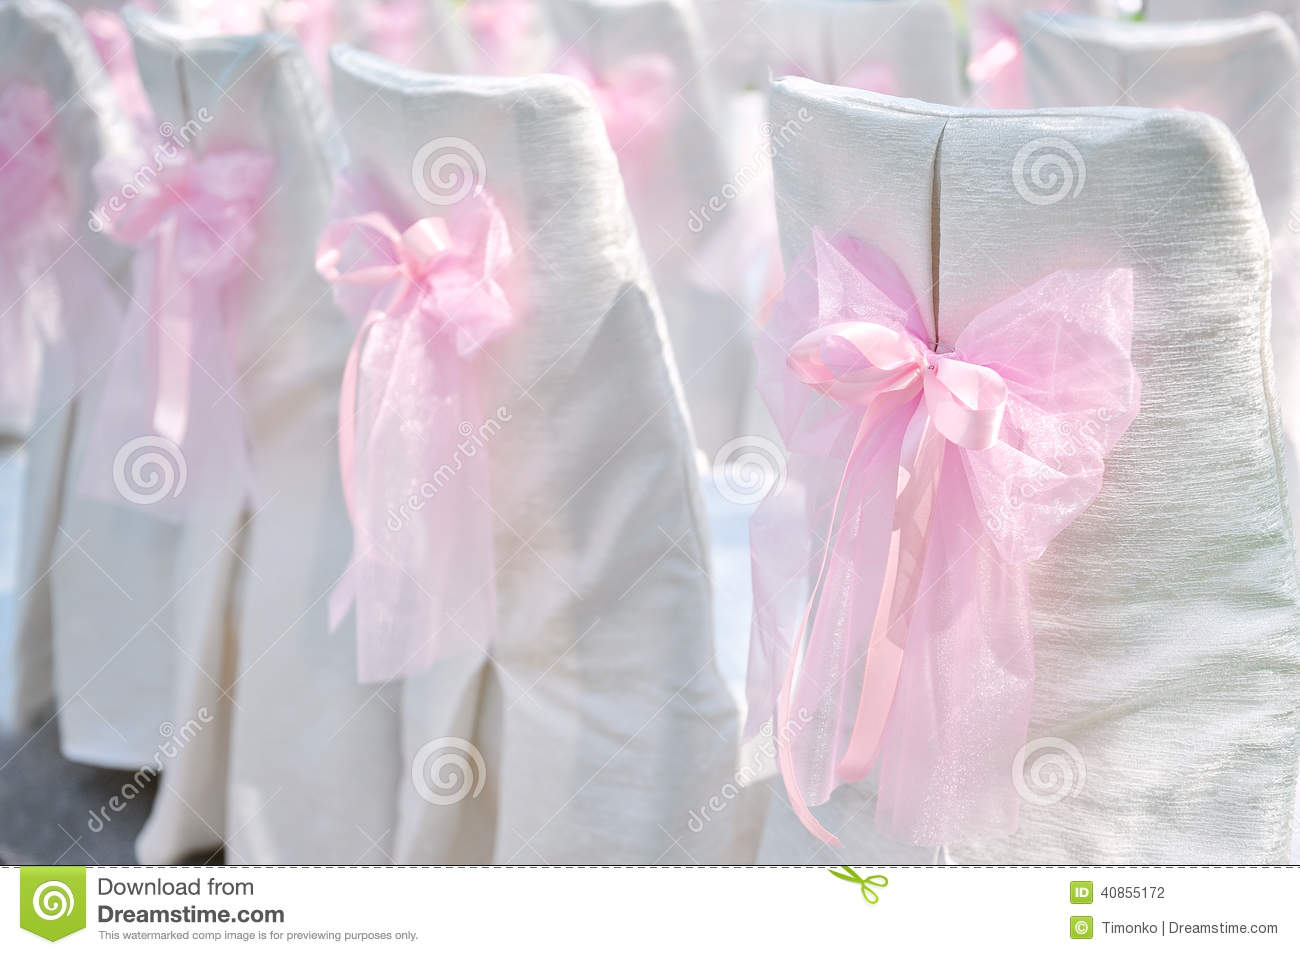 Couple room decoration - Decoration On Wedding Chairs Pink Bow Decoration On Wedding Chairs